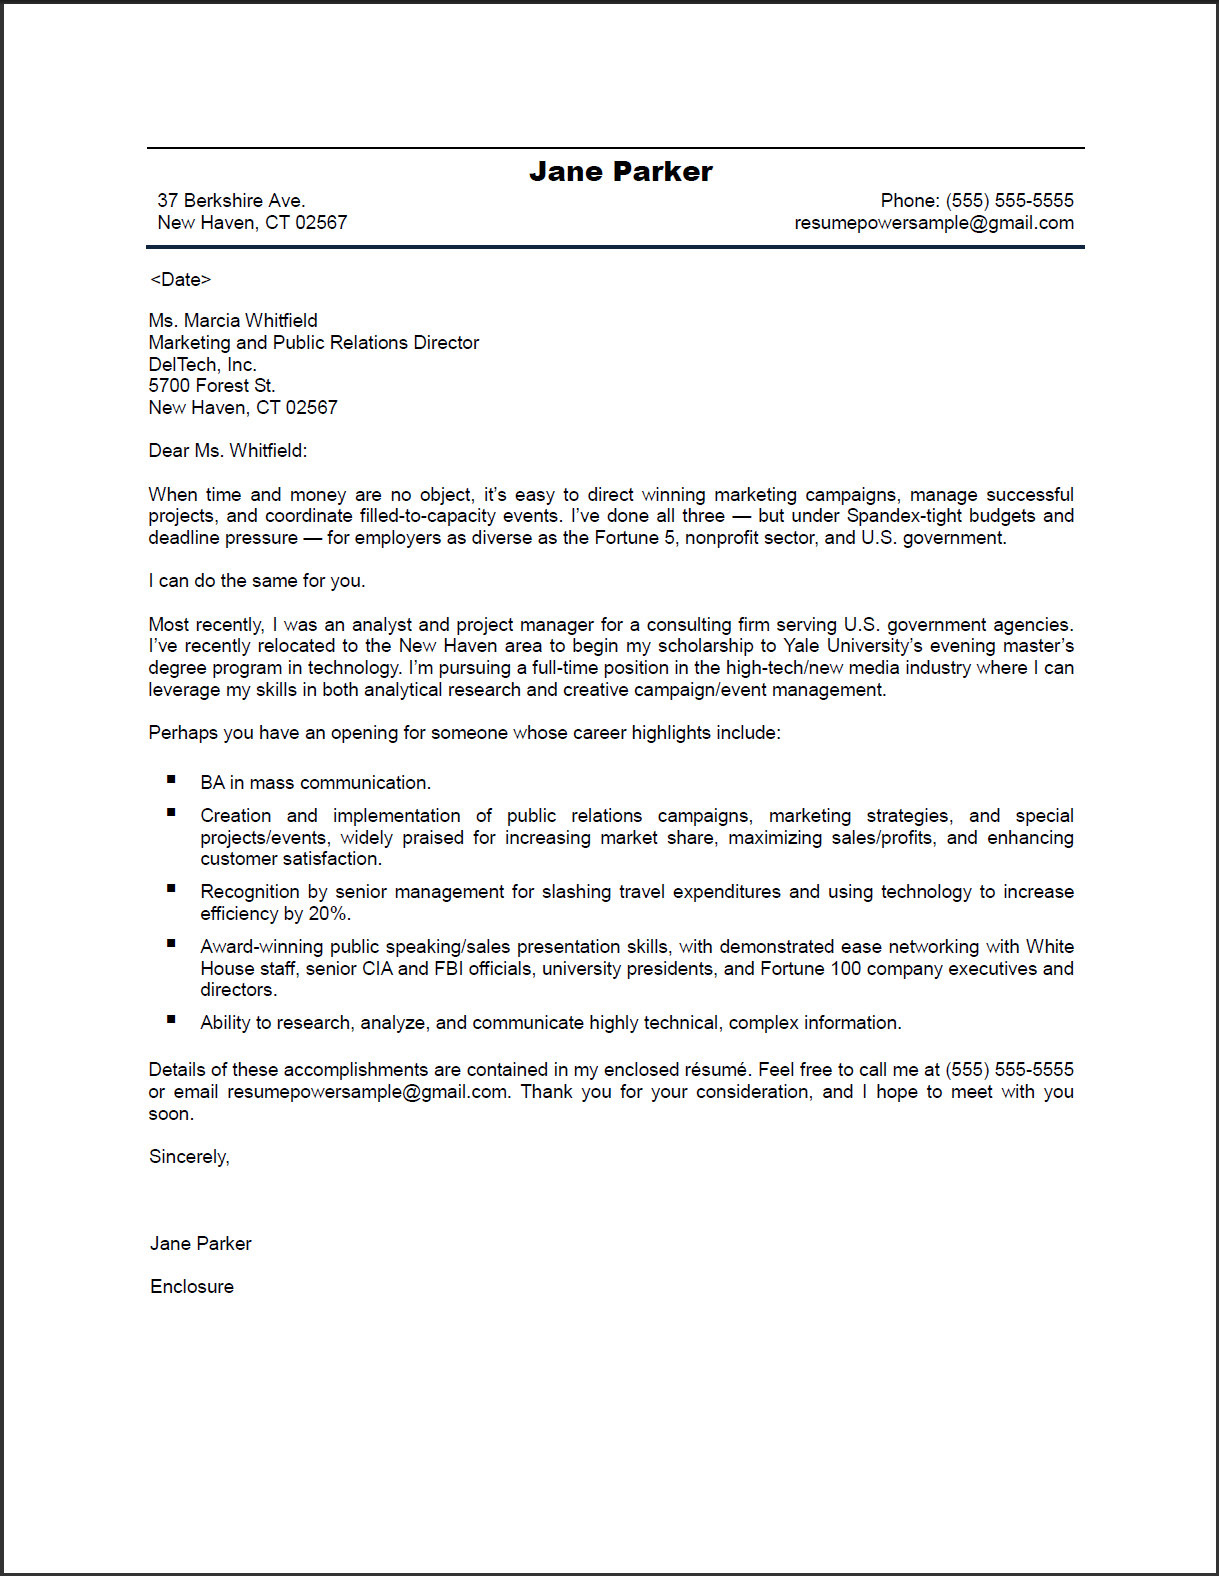 example resume cover page letter format examples cover cover letter fax format sample printable standard writing effective - International Broadcast Engineer Sample Resume